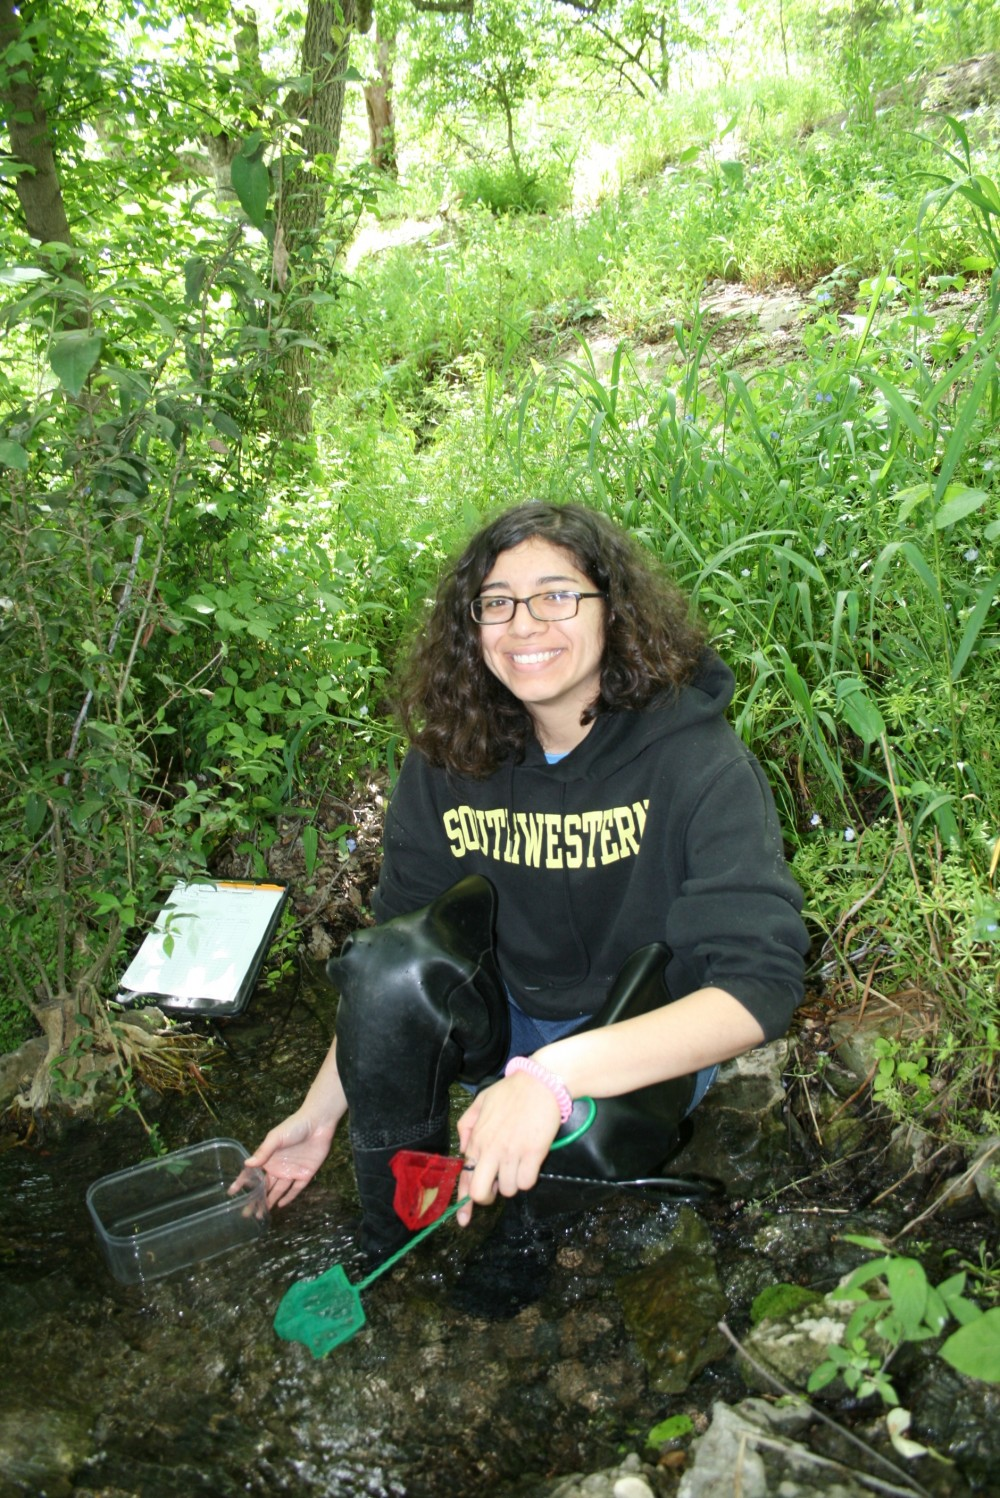 Areli in the field doing her Capstone research on Georgetown Salamander.